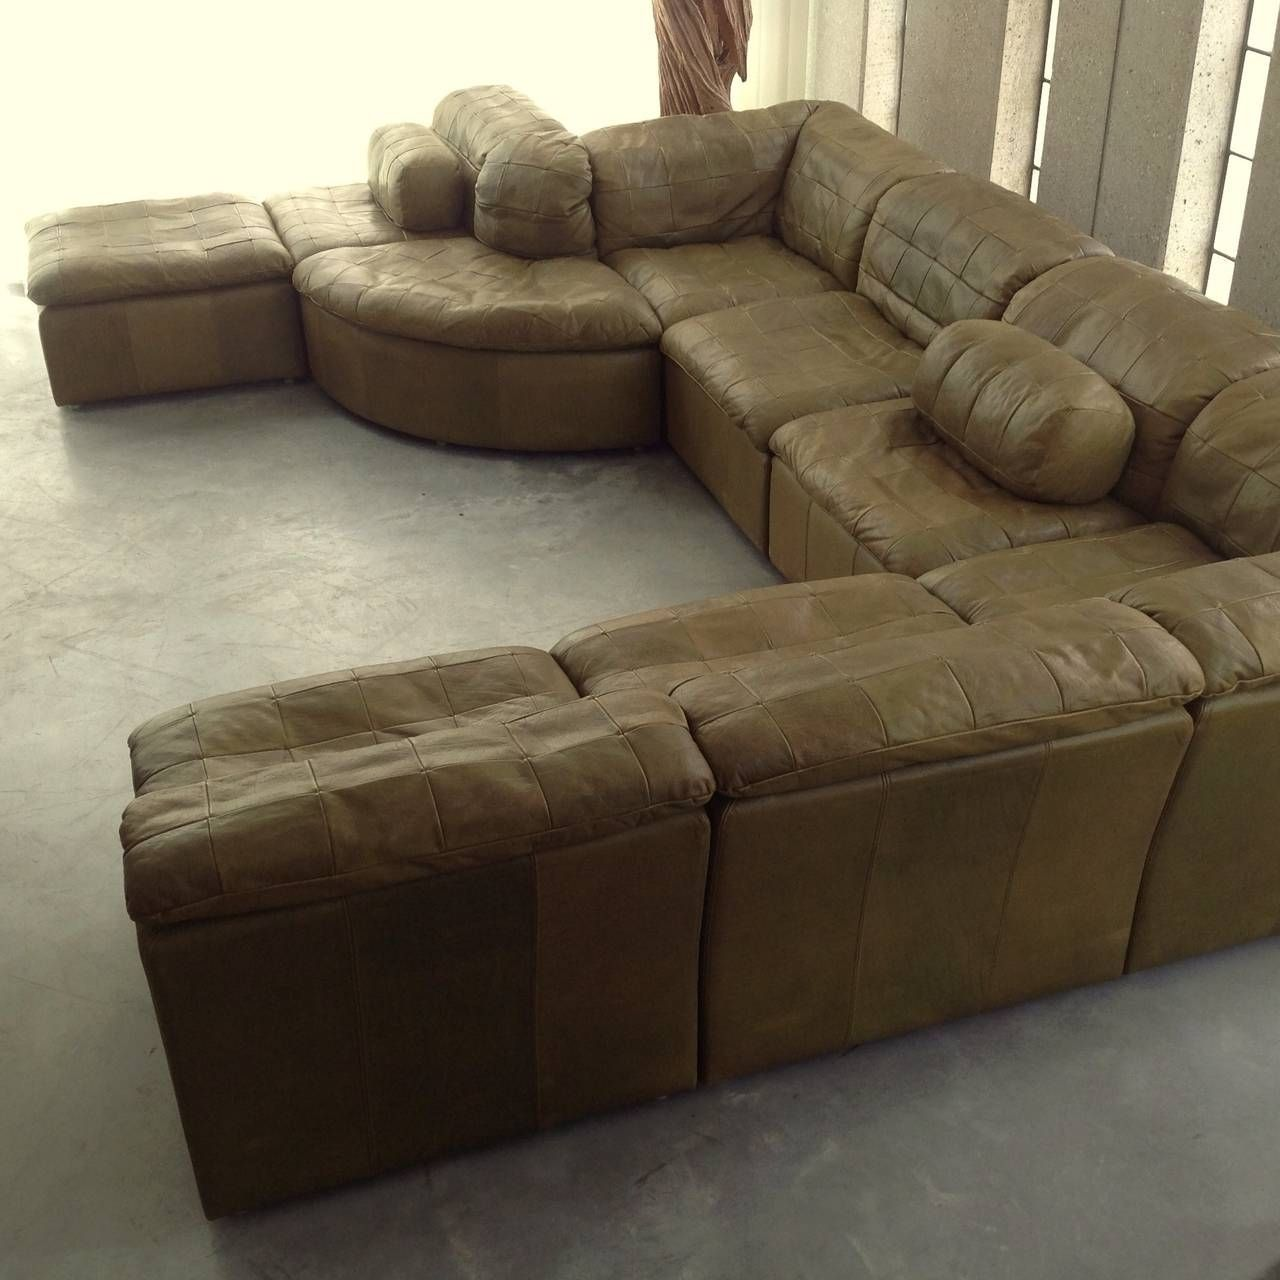 Olive Green Leather Sectional Sofa | wolf decor | Leather sectional ...